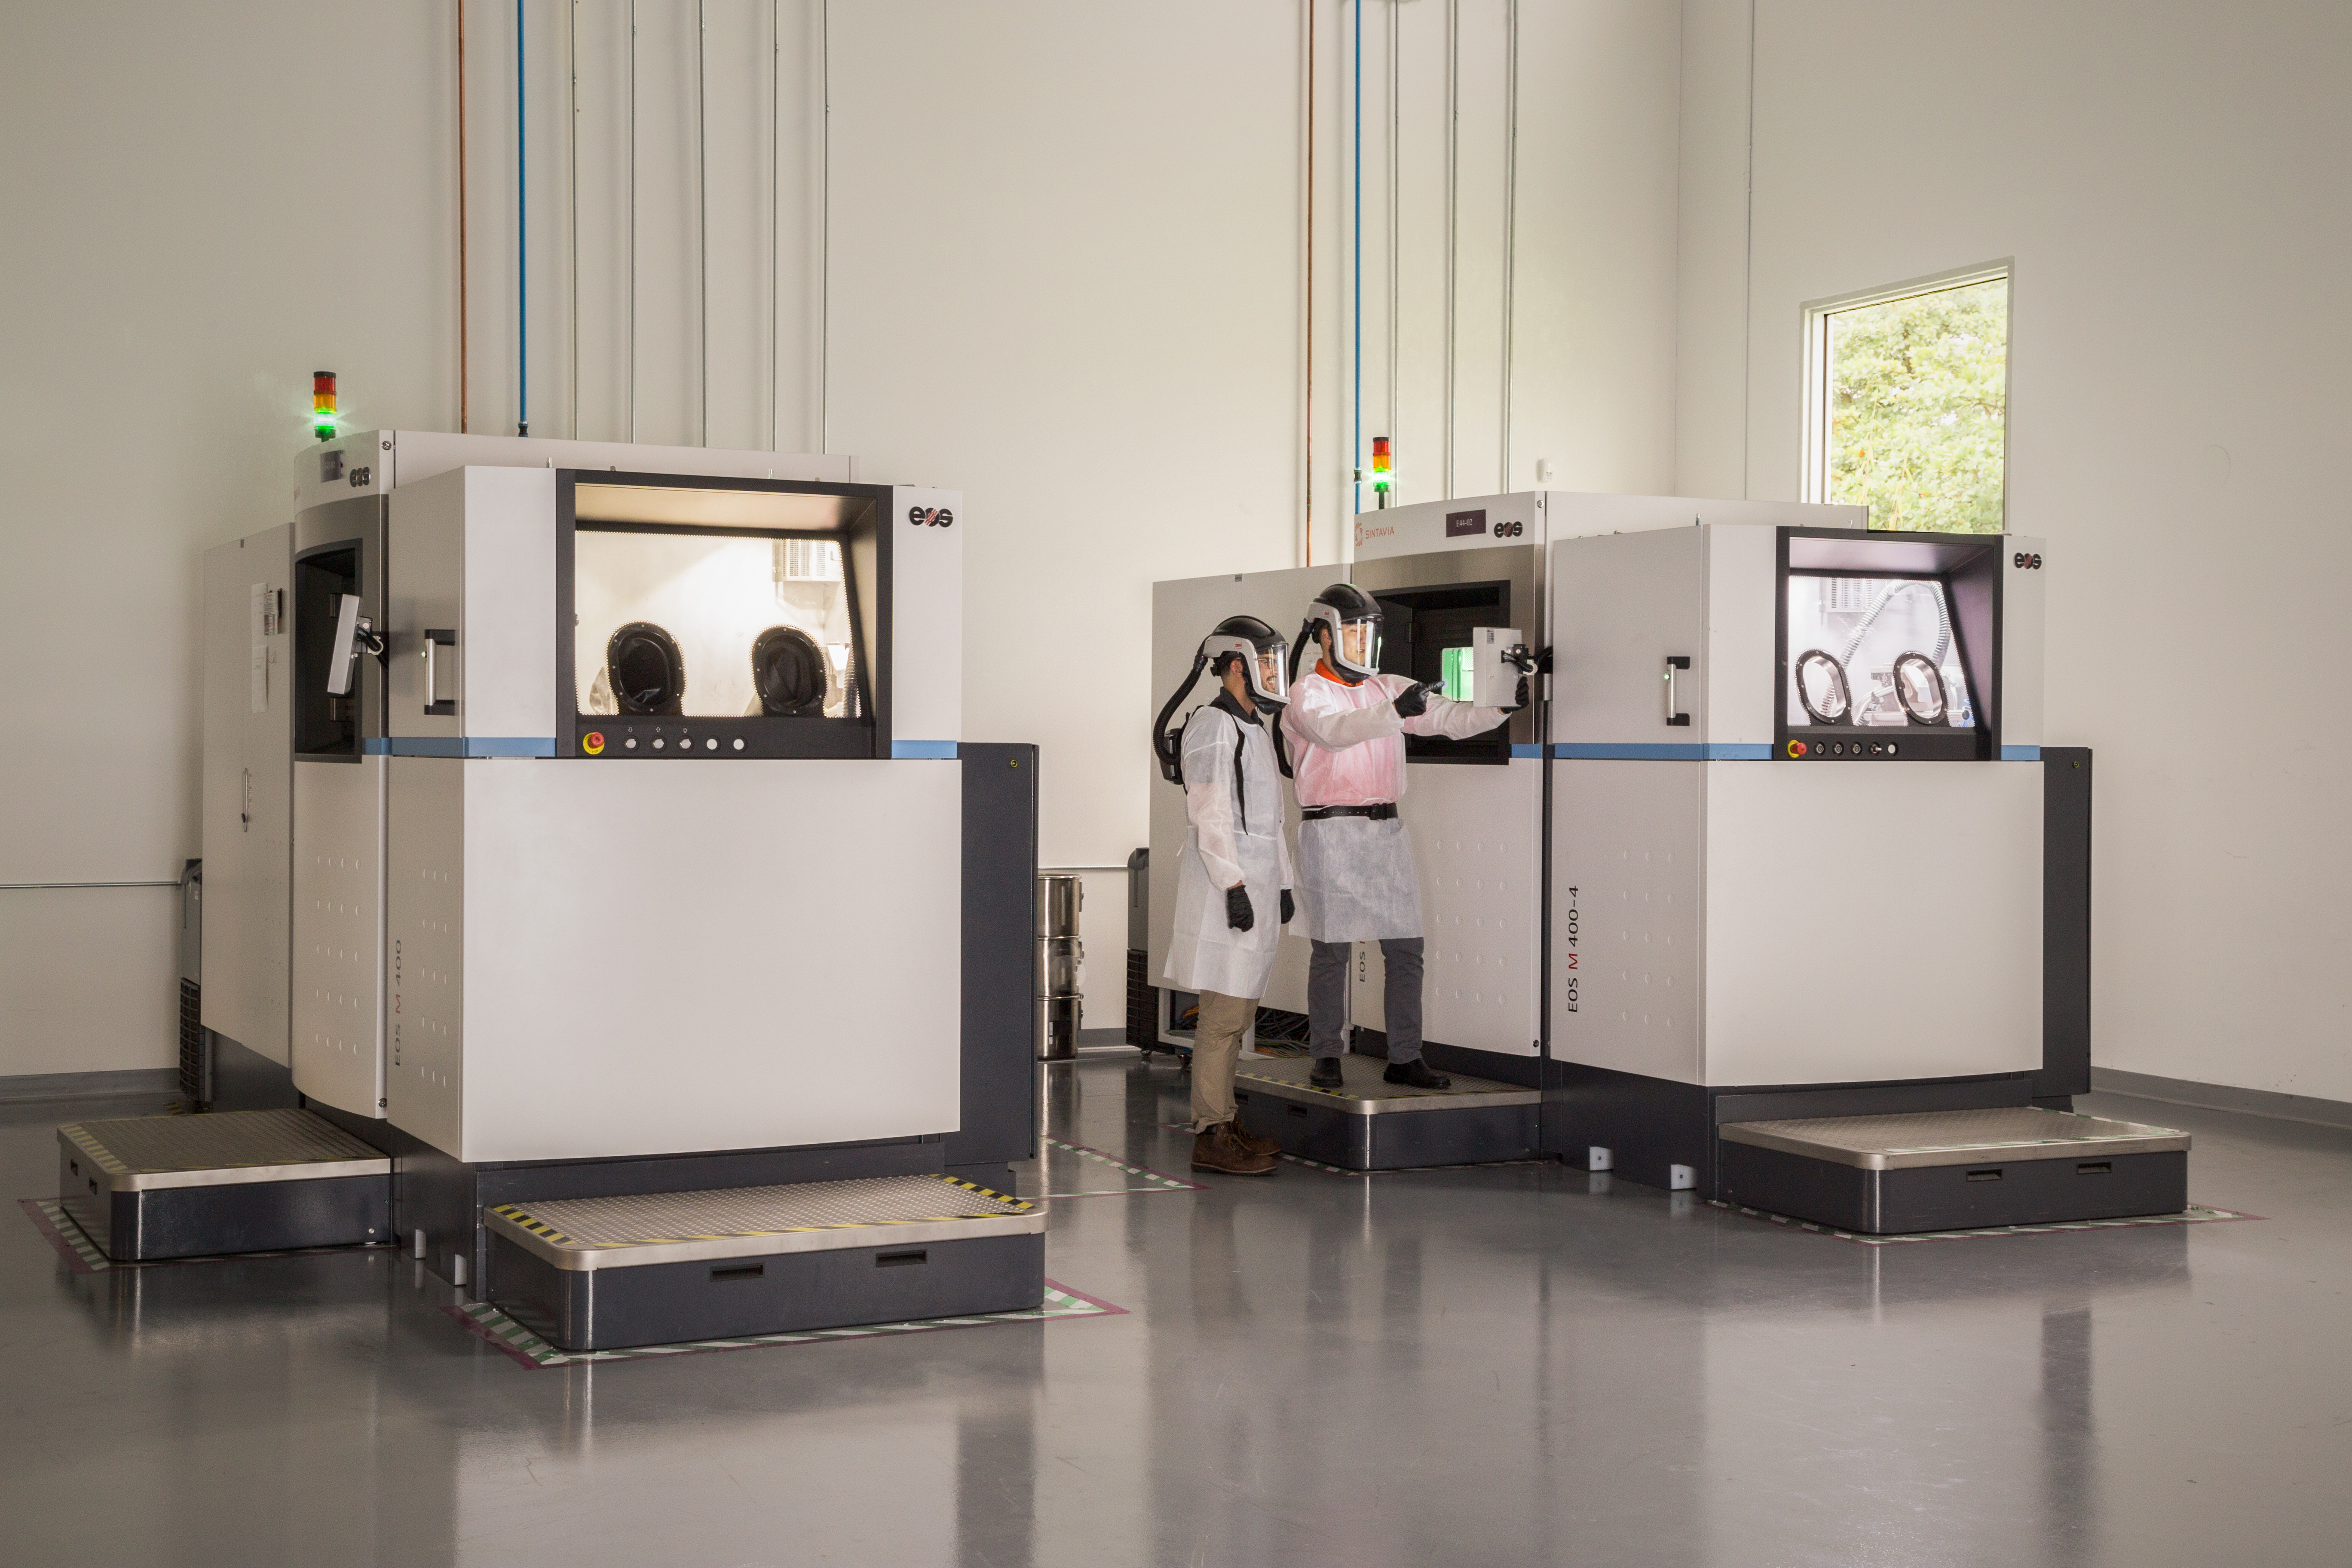 Image shows two of Sintavia's M400 printers at its Hollywood additive manufacturing facility. Photo via Business Wire.